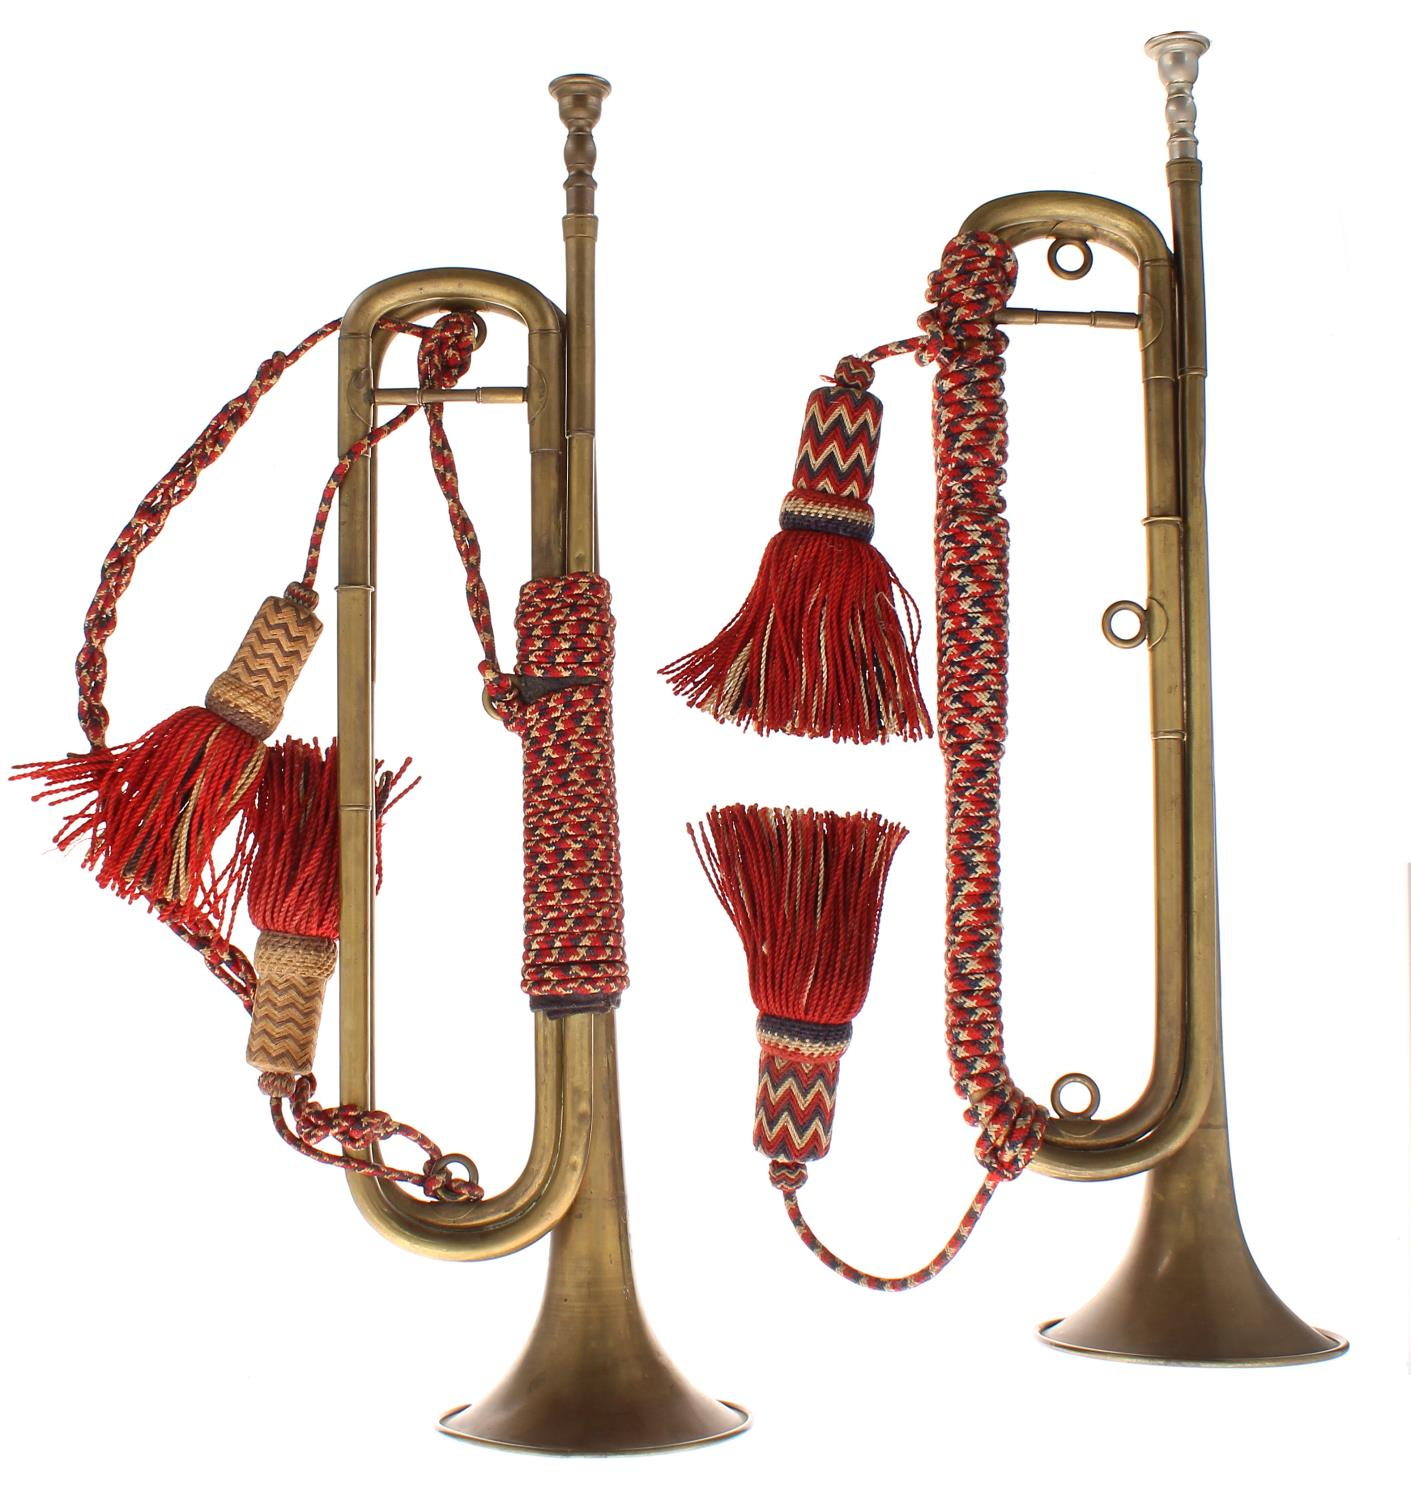 Pair of cavalry trumpets by and stamped Couesnon, Paris, brass tubing coiled twice, bound with